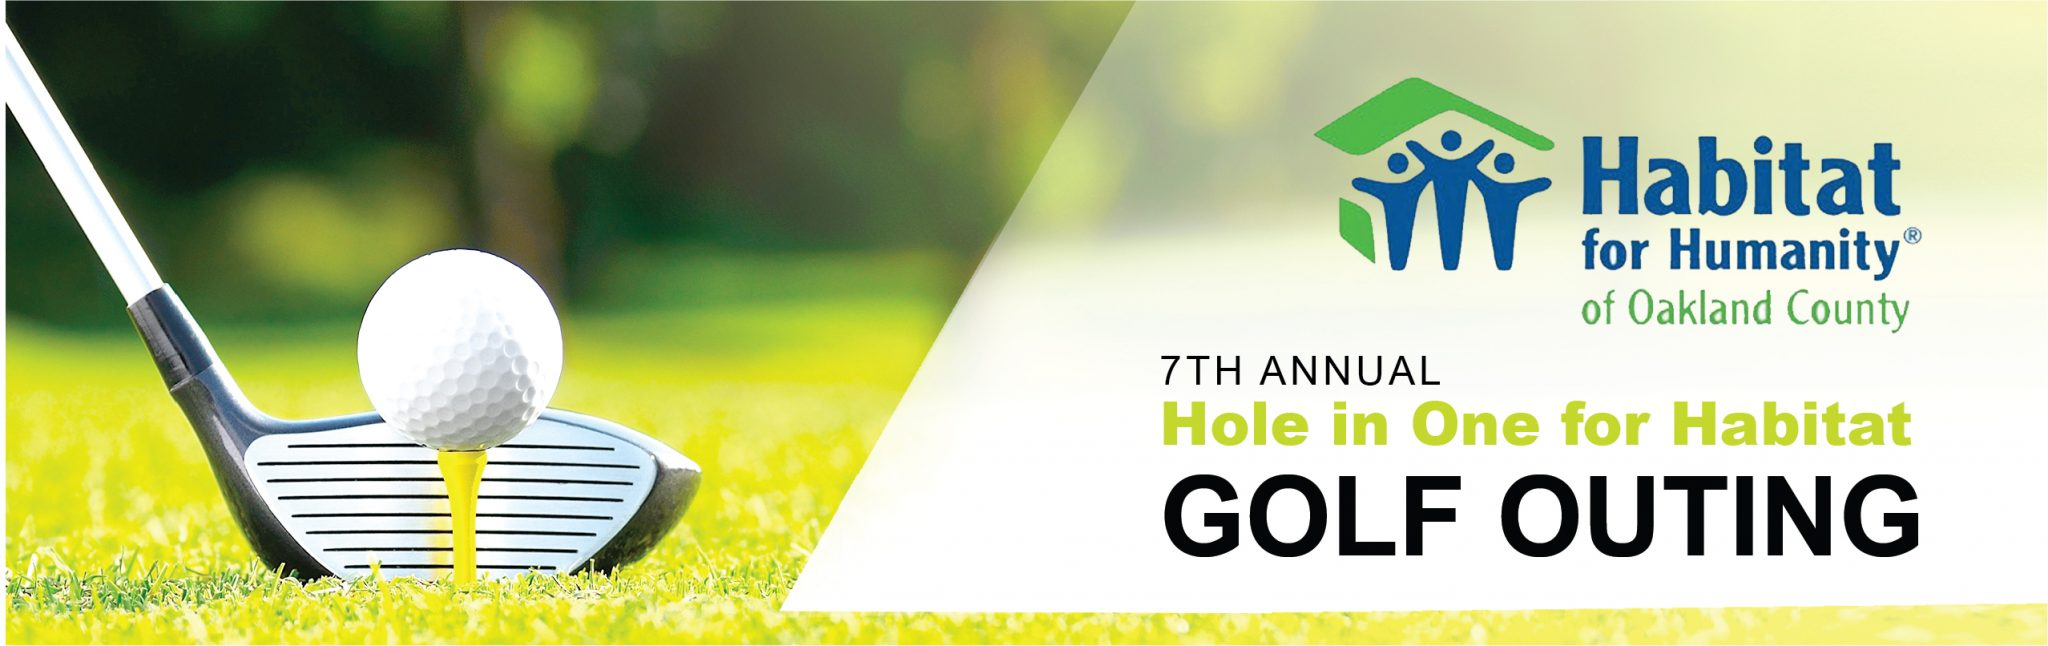 7th Annual Hole in One for Habitat Golf Outing